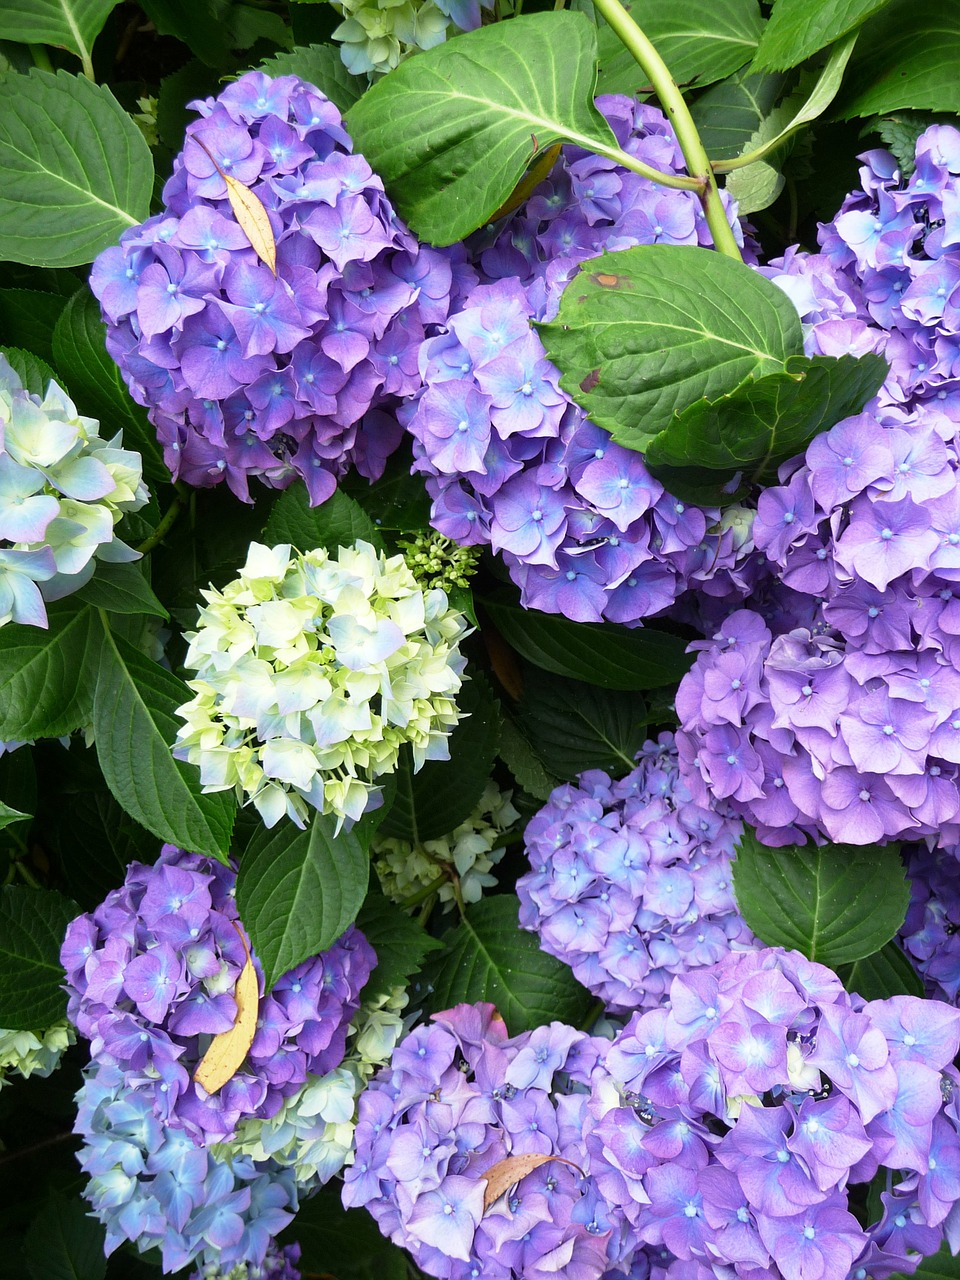 Hydrangea top 10 tips on how to plant grow care - Caring hydrangea garden ...